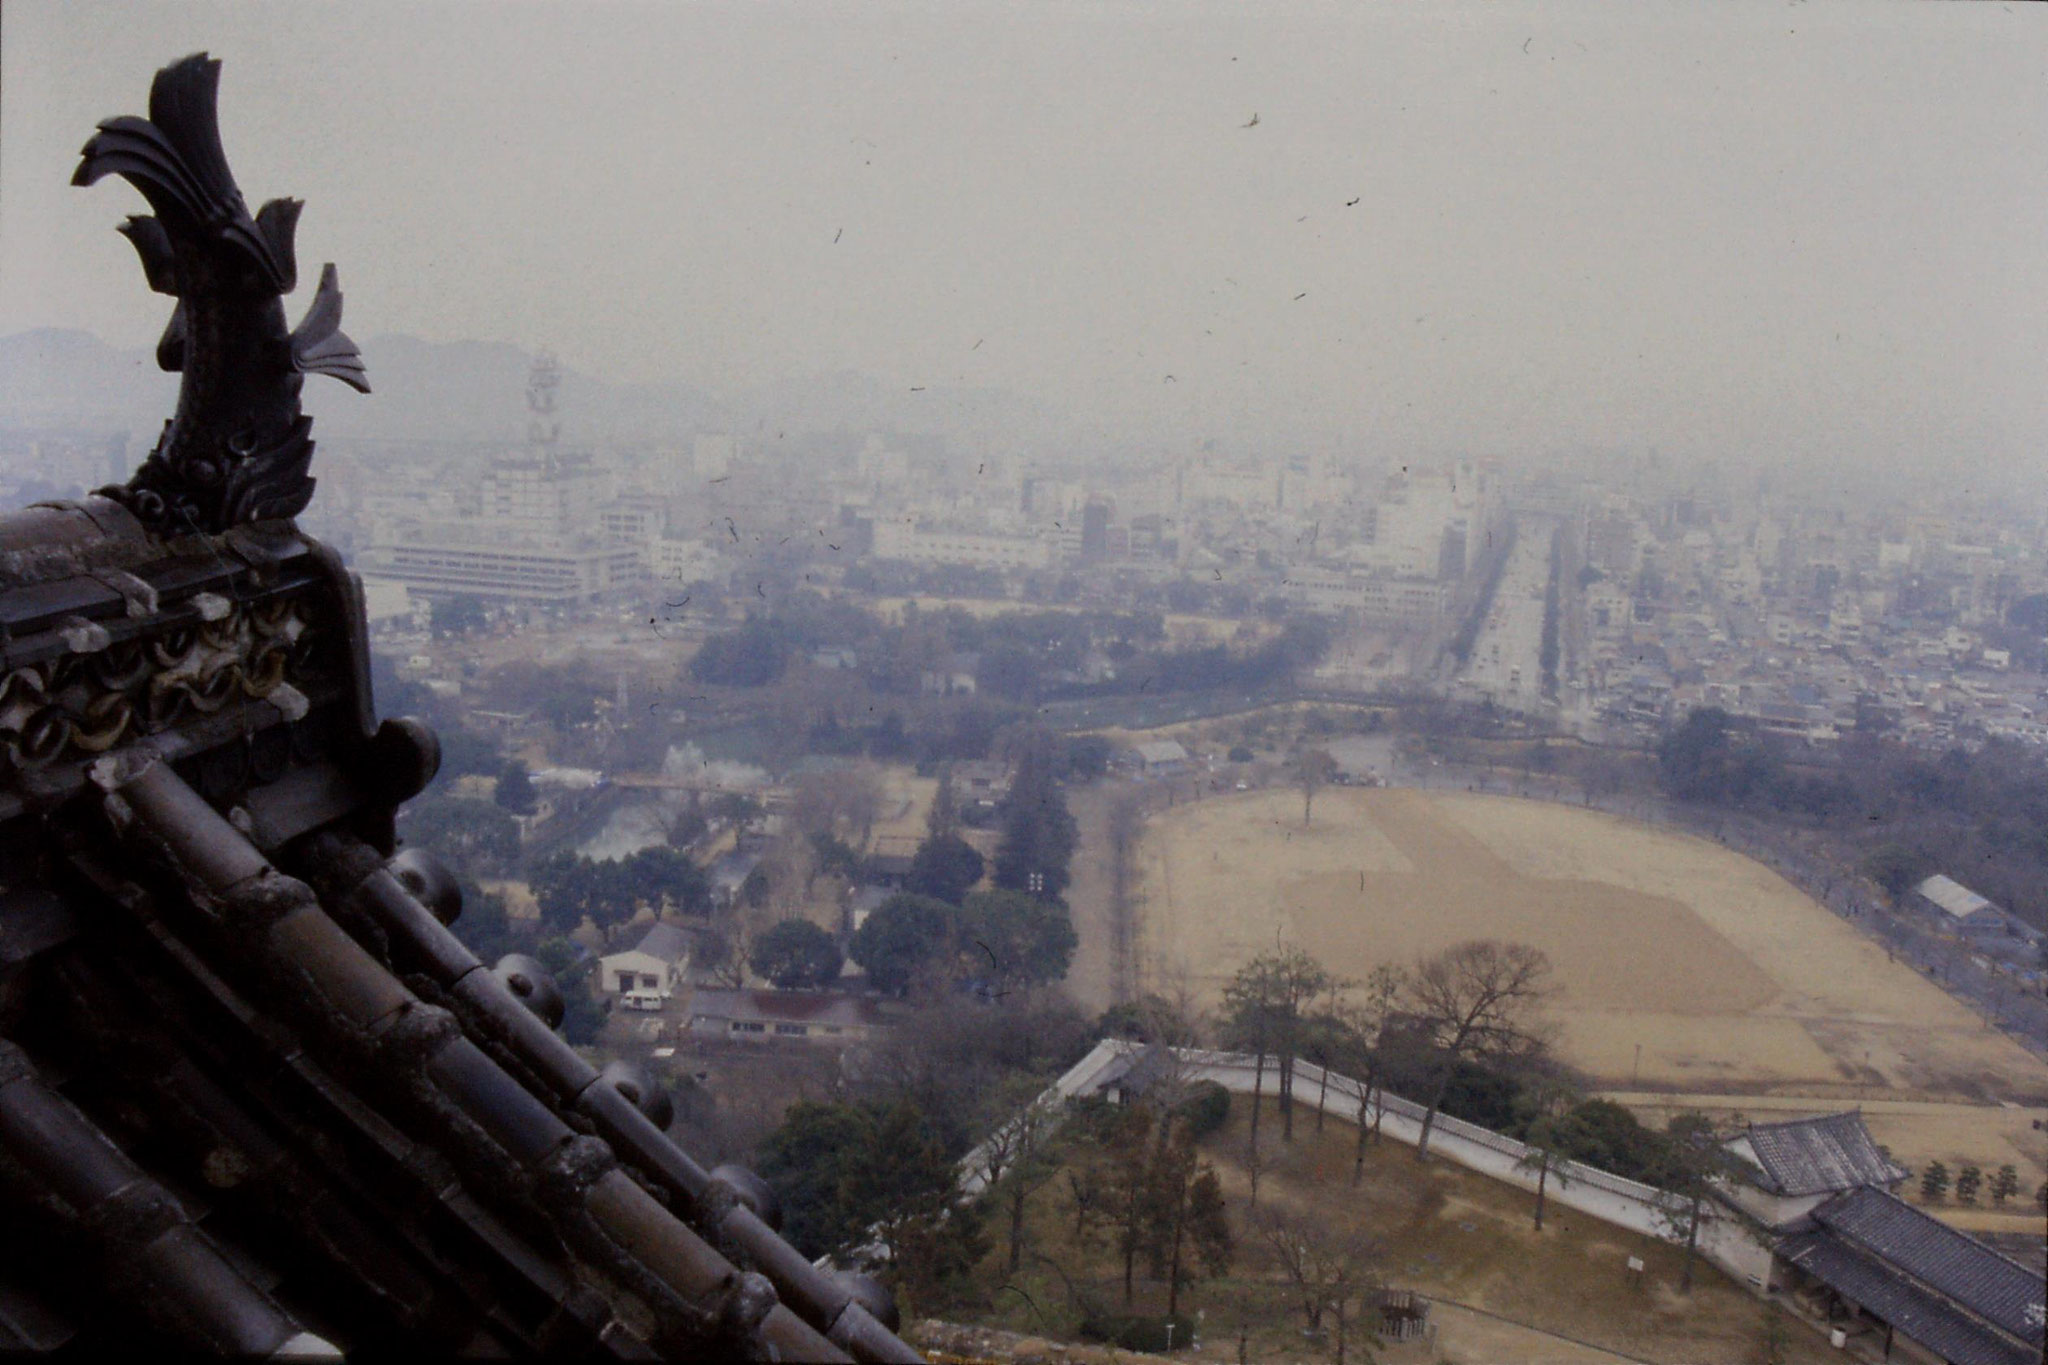 18/1/1989: 31: view from Himeji castle